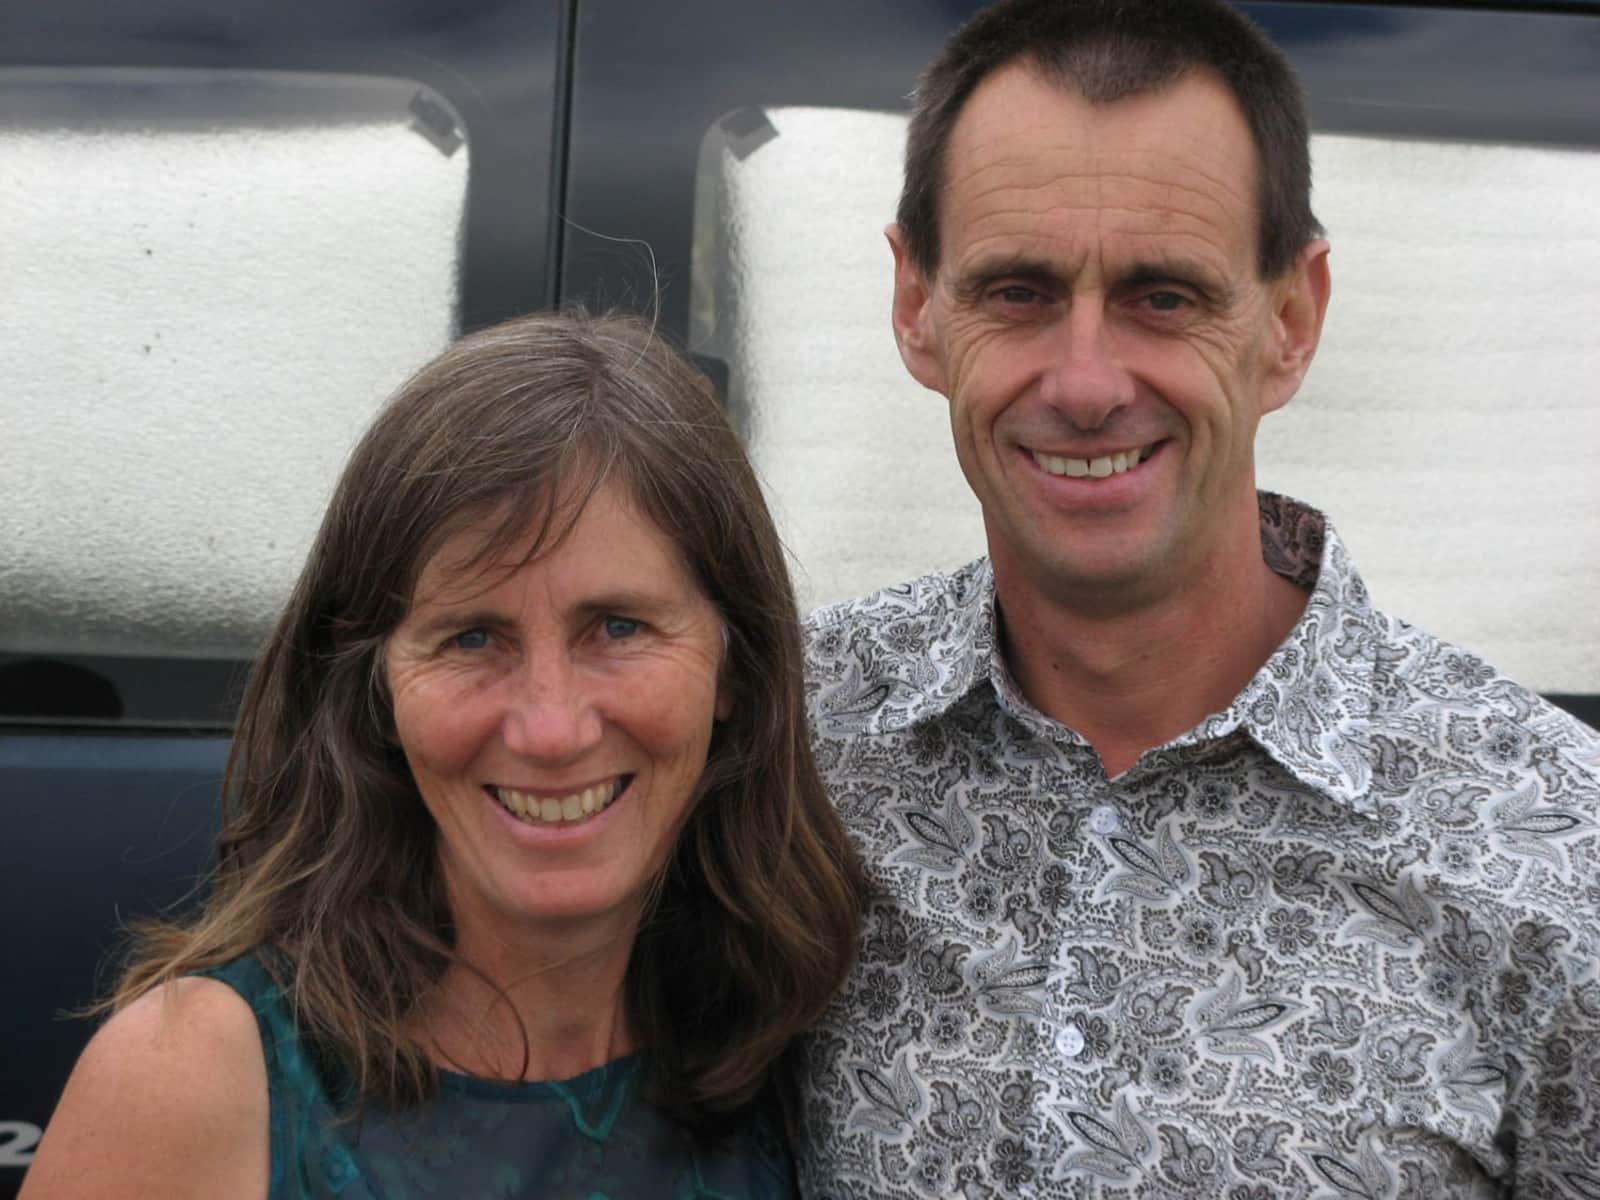 Jo-anne & Allan from New Plymouth, New Zealand